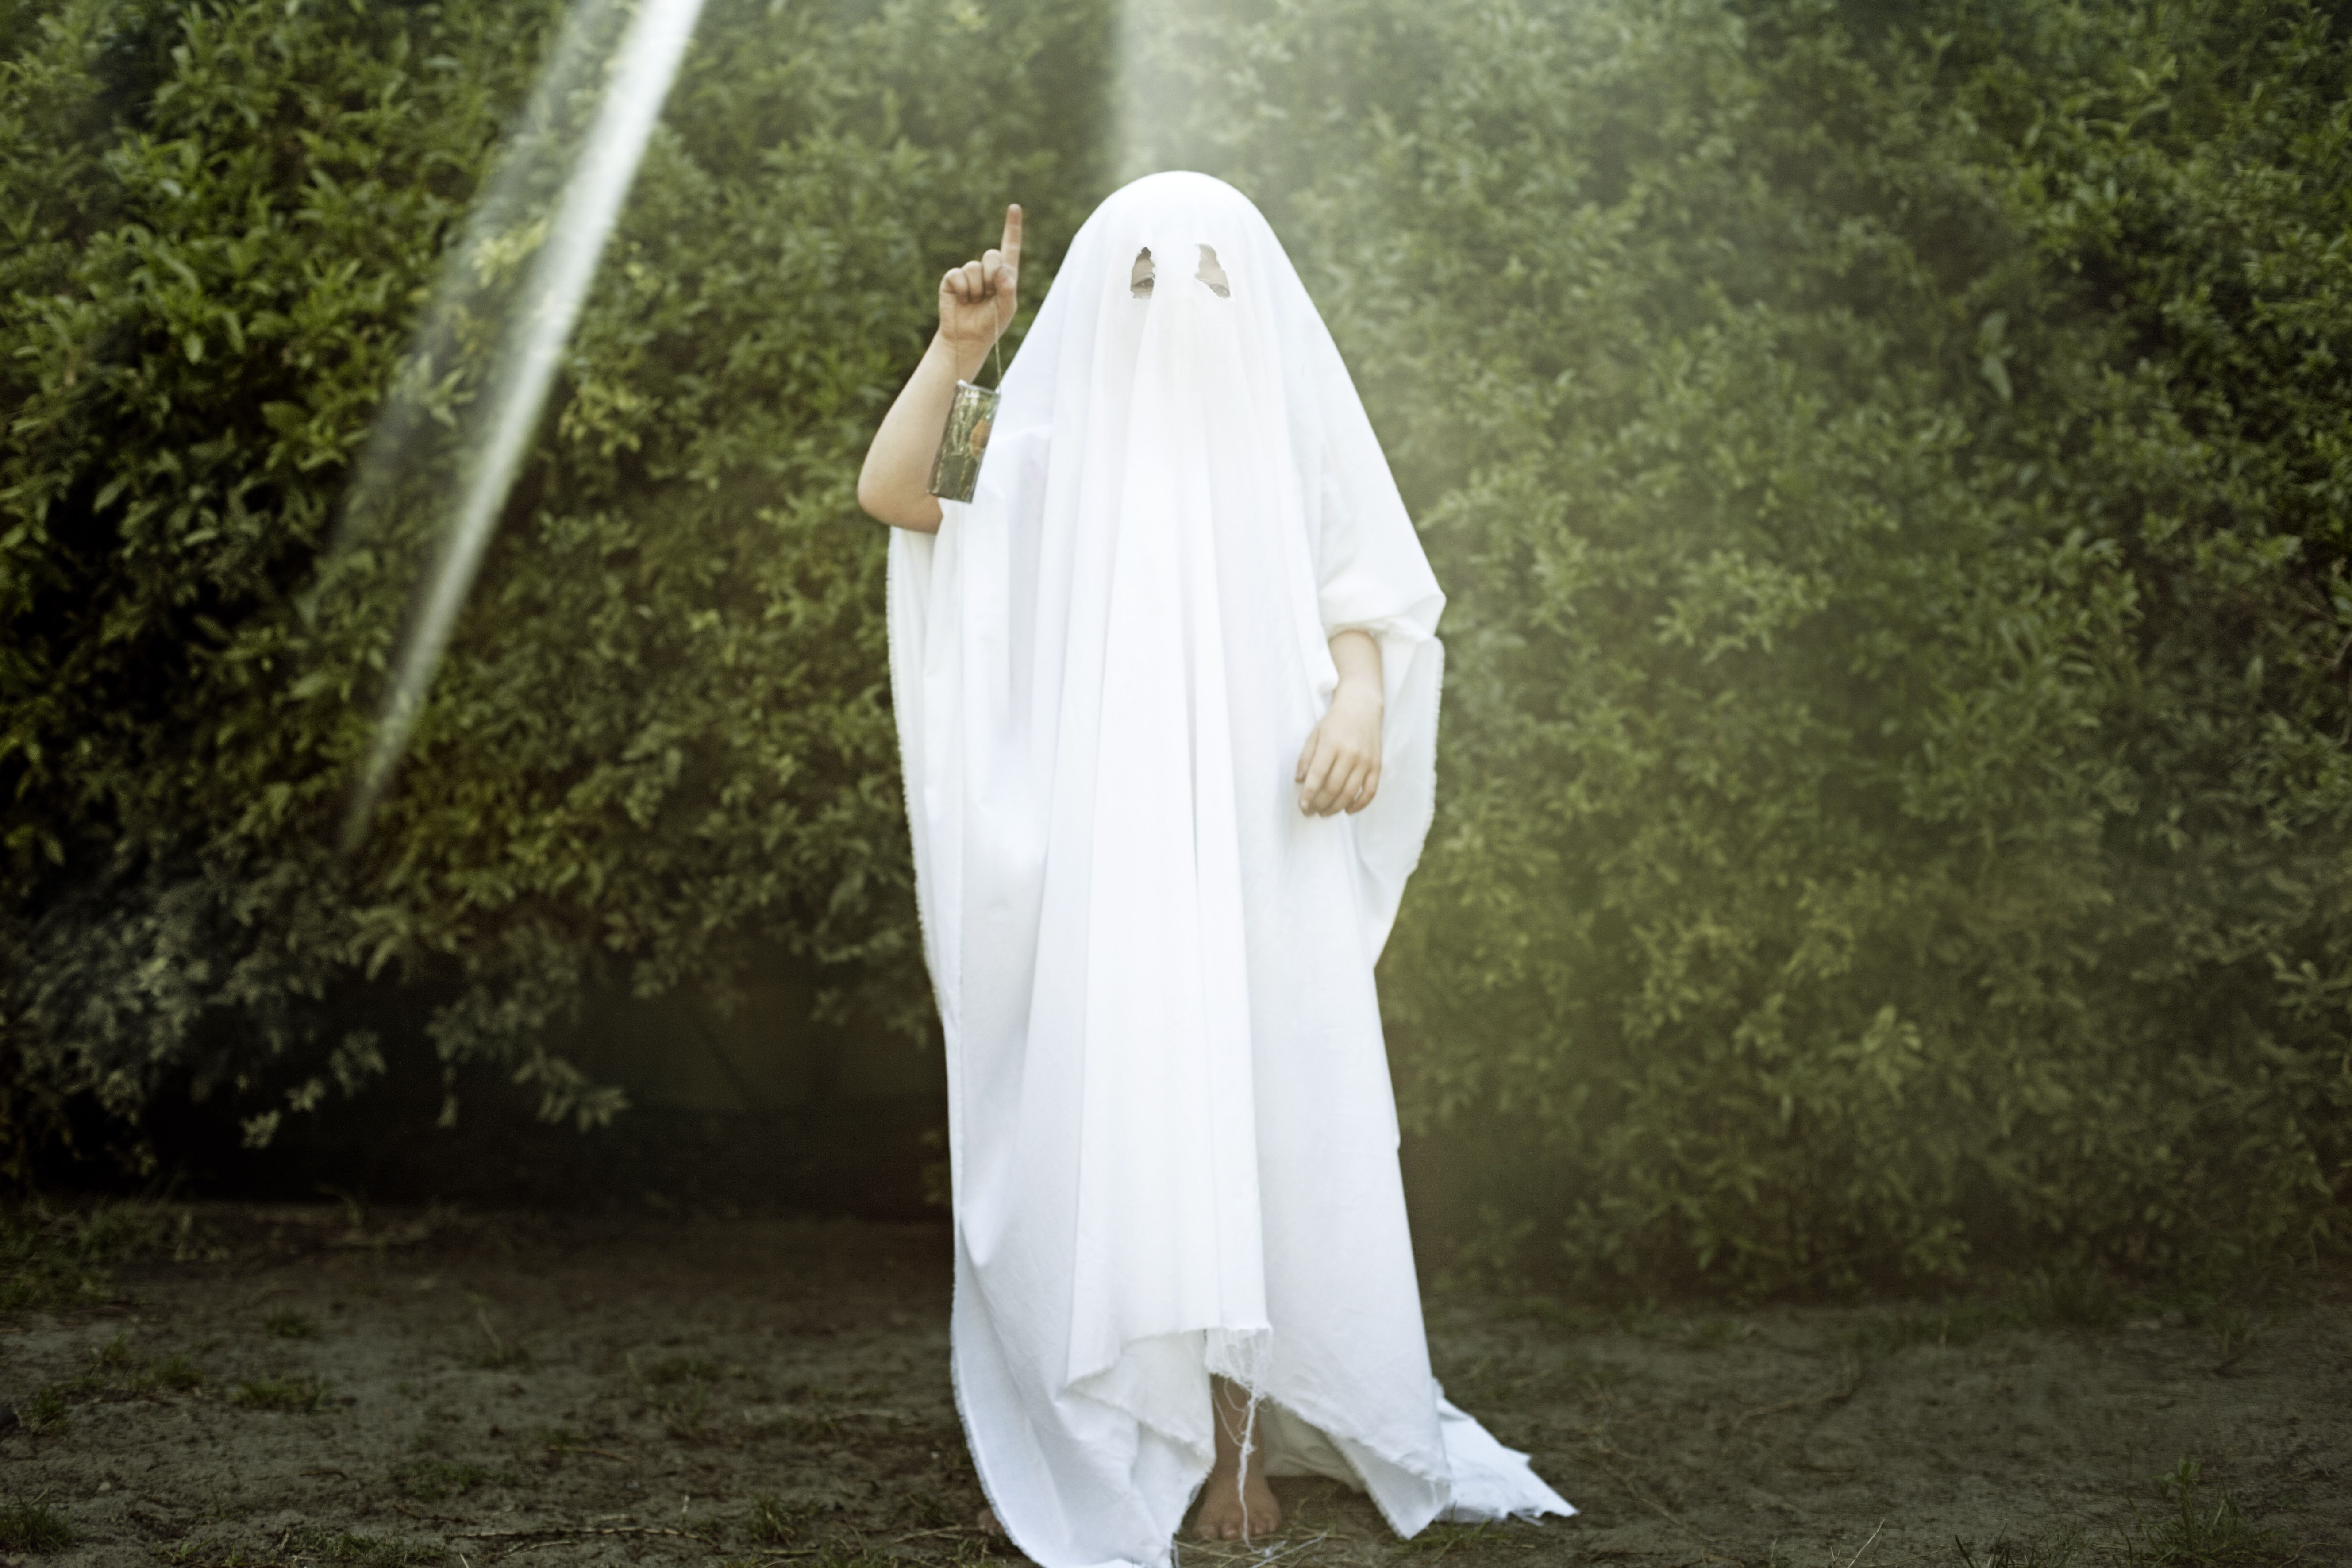 A child in bushes dressed as a ghost.